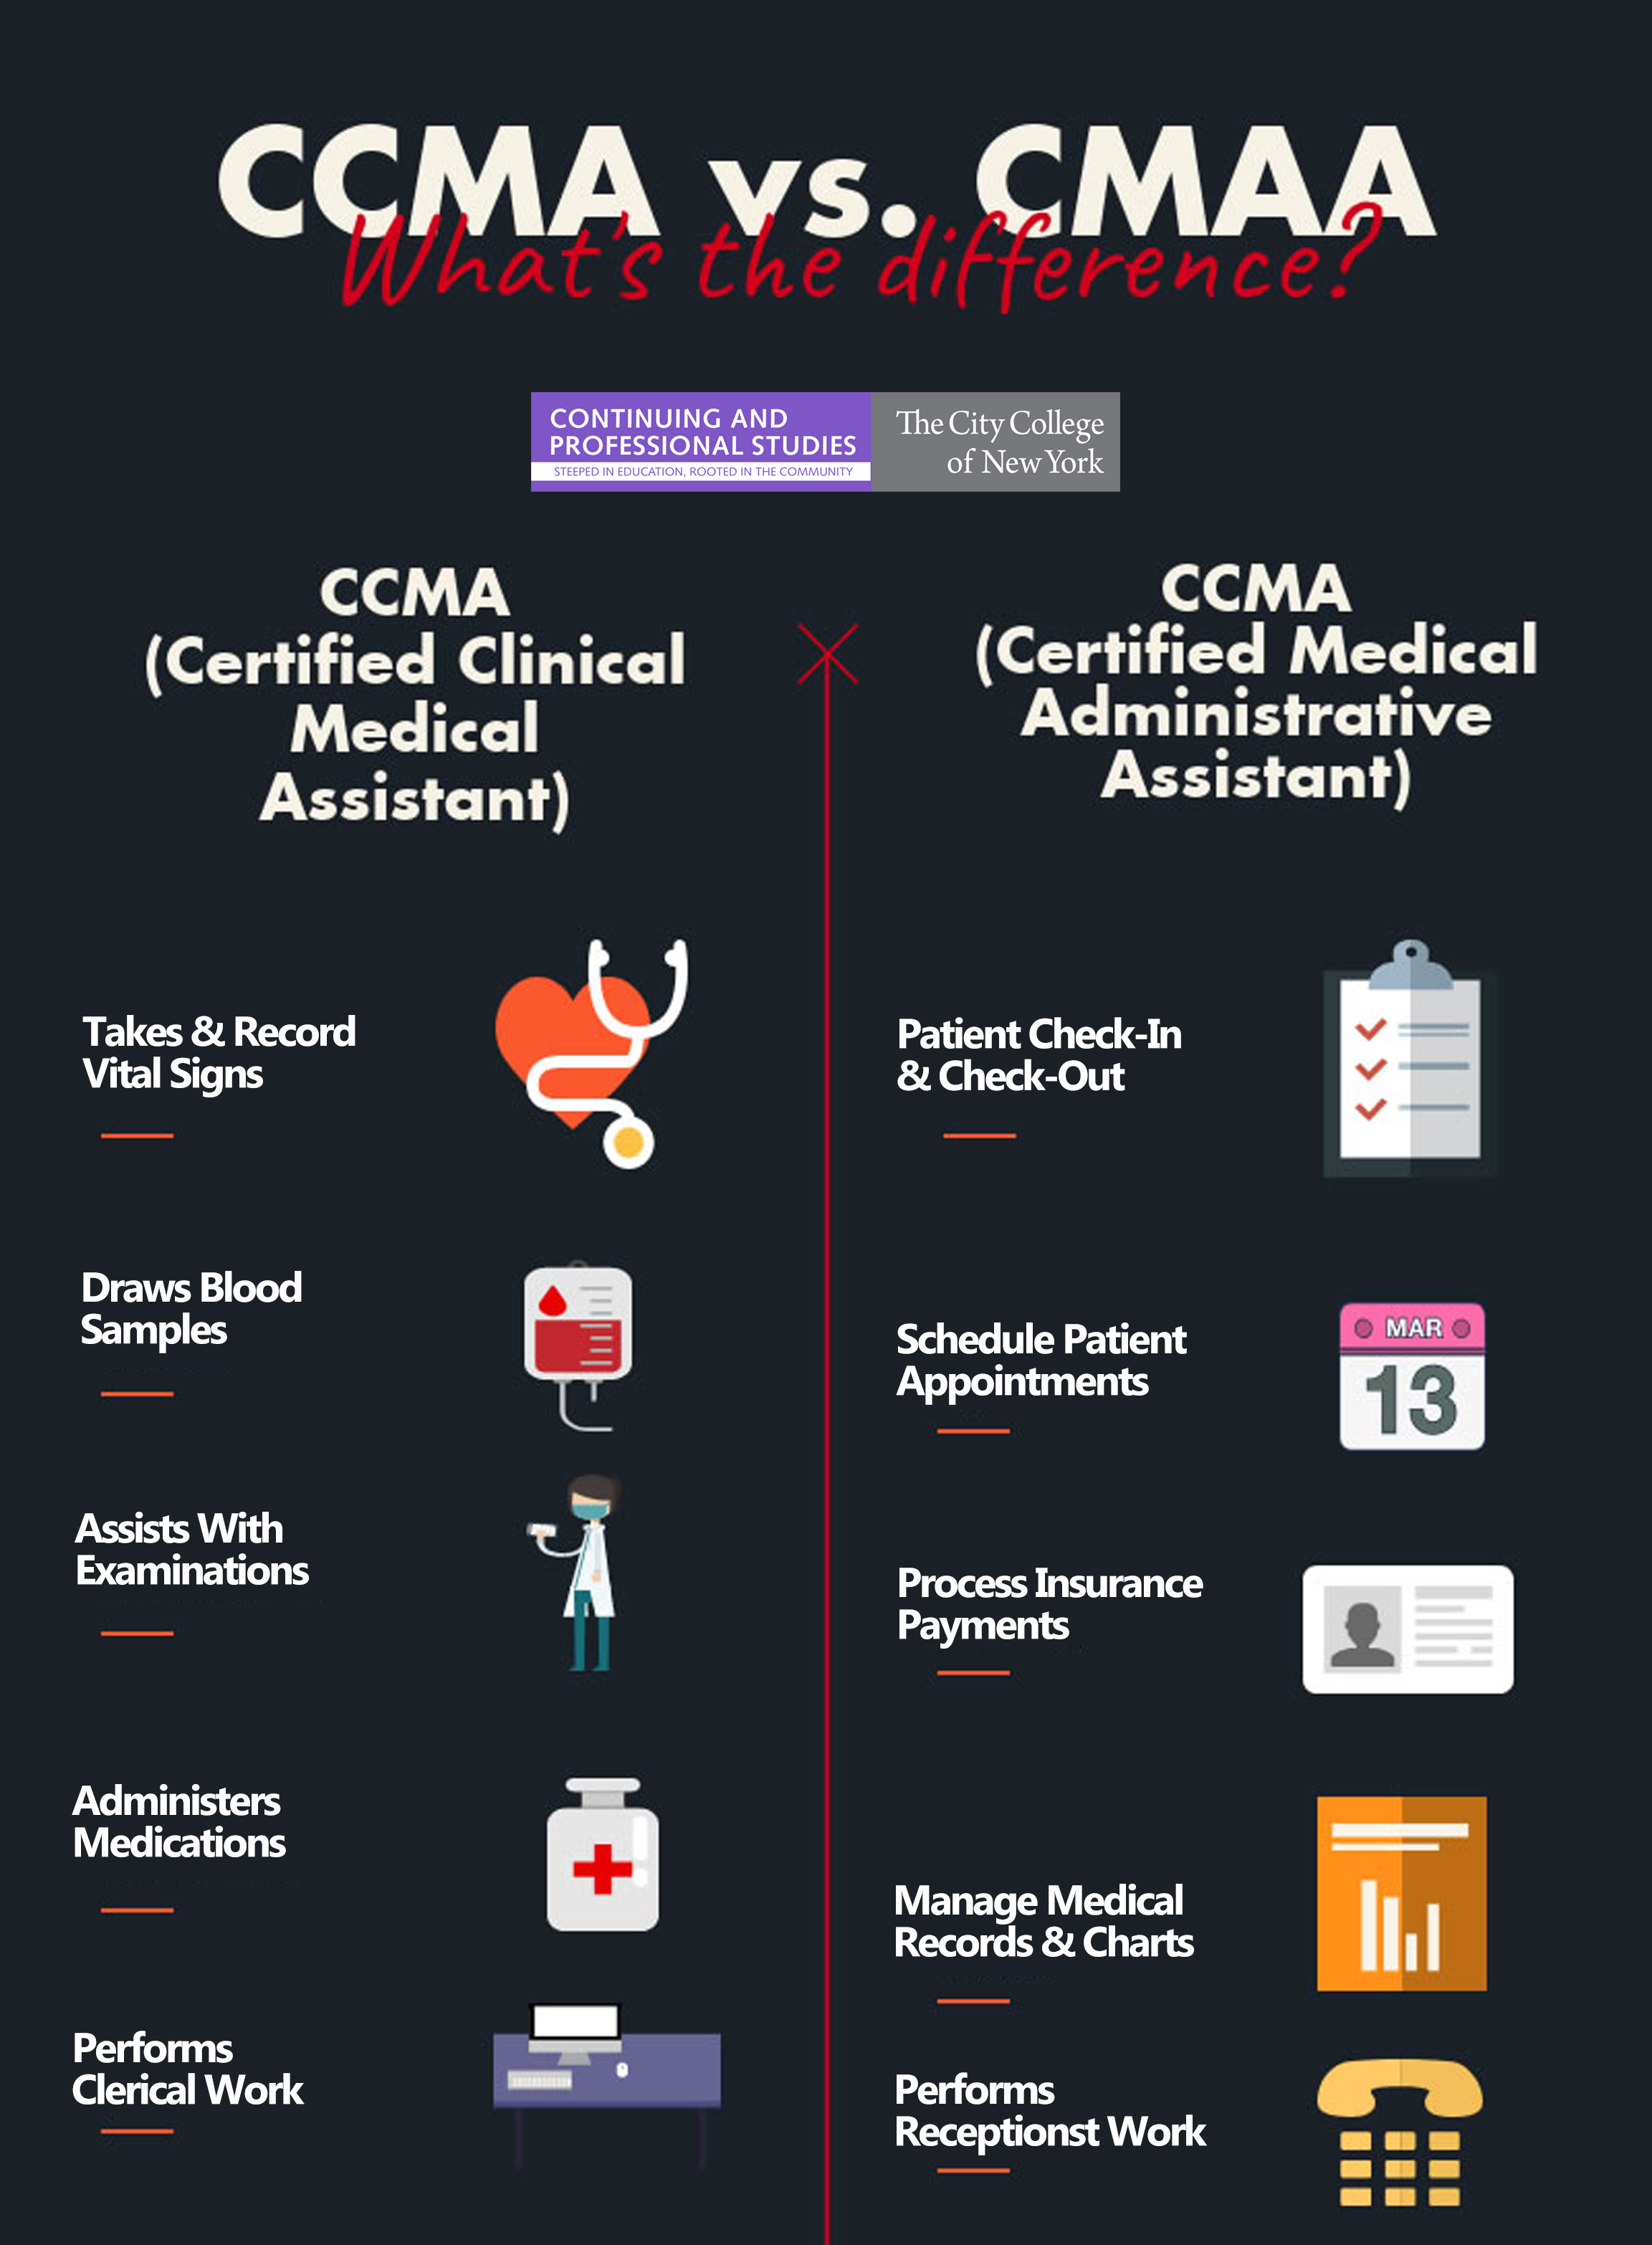 CCMA vs. CMAA Infographic